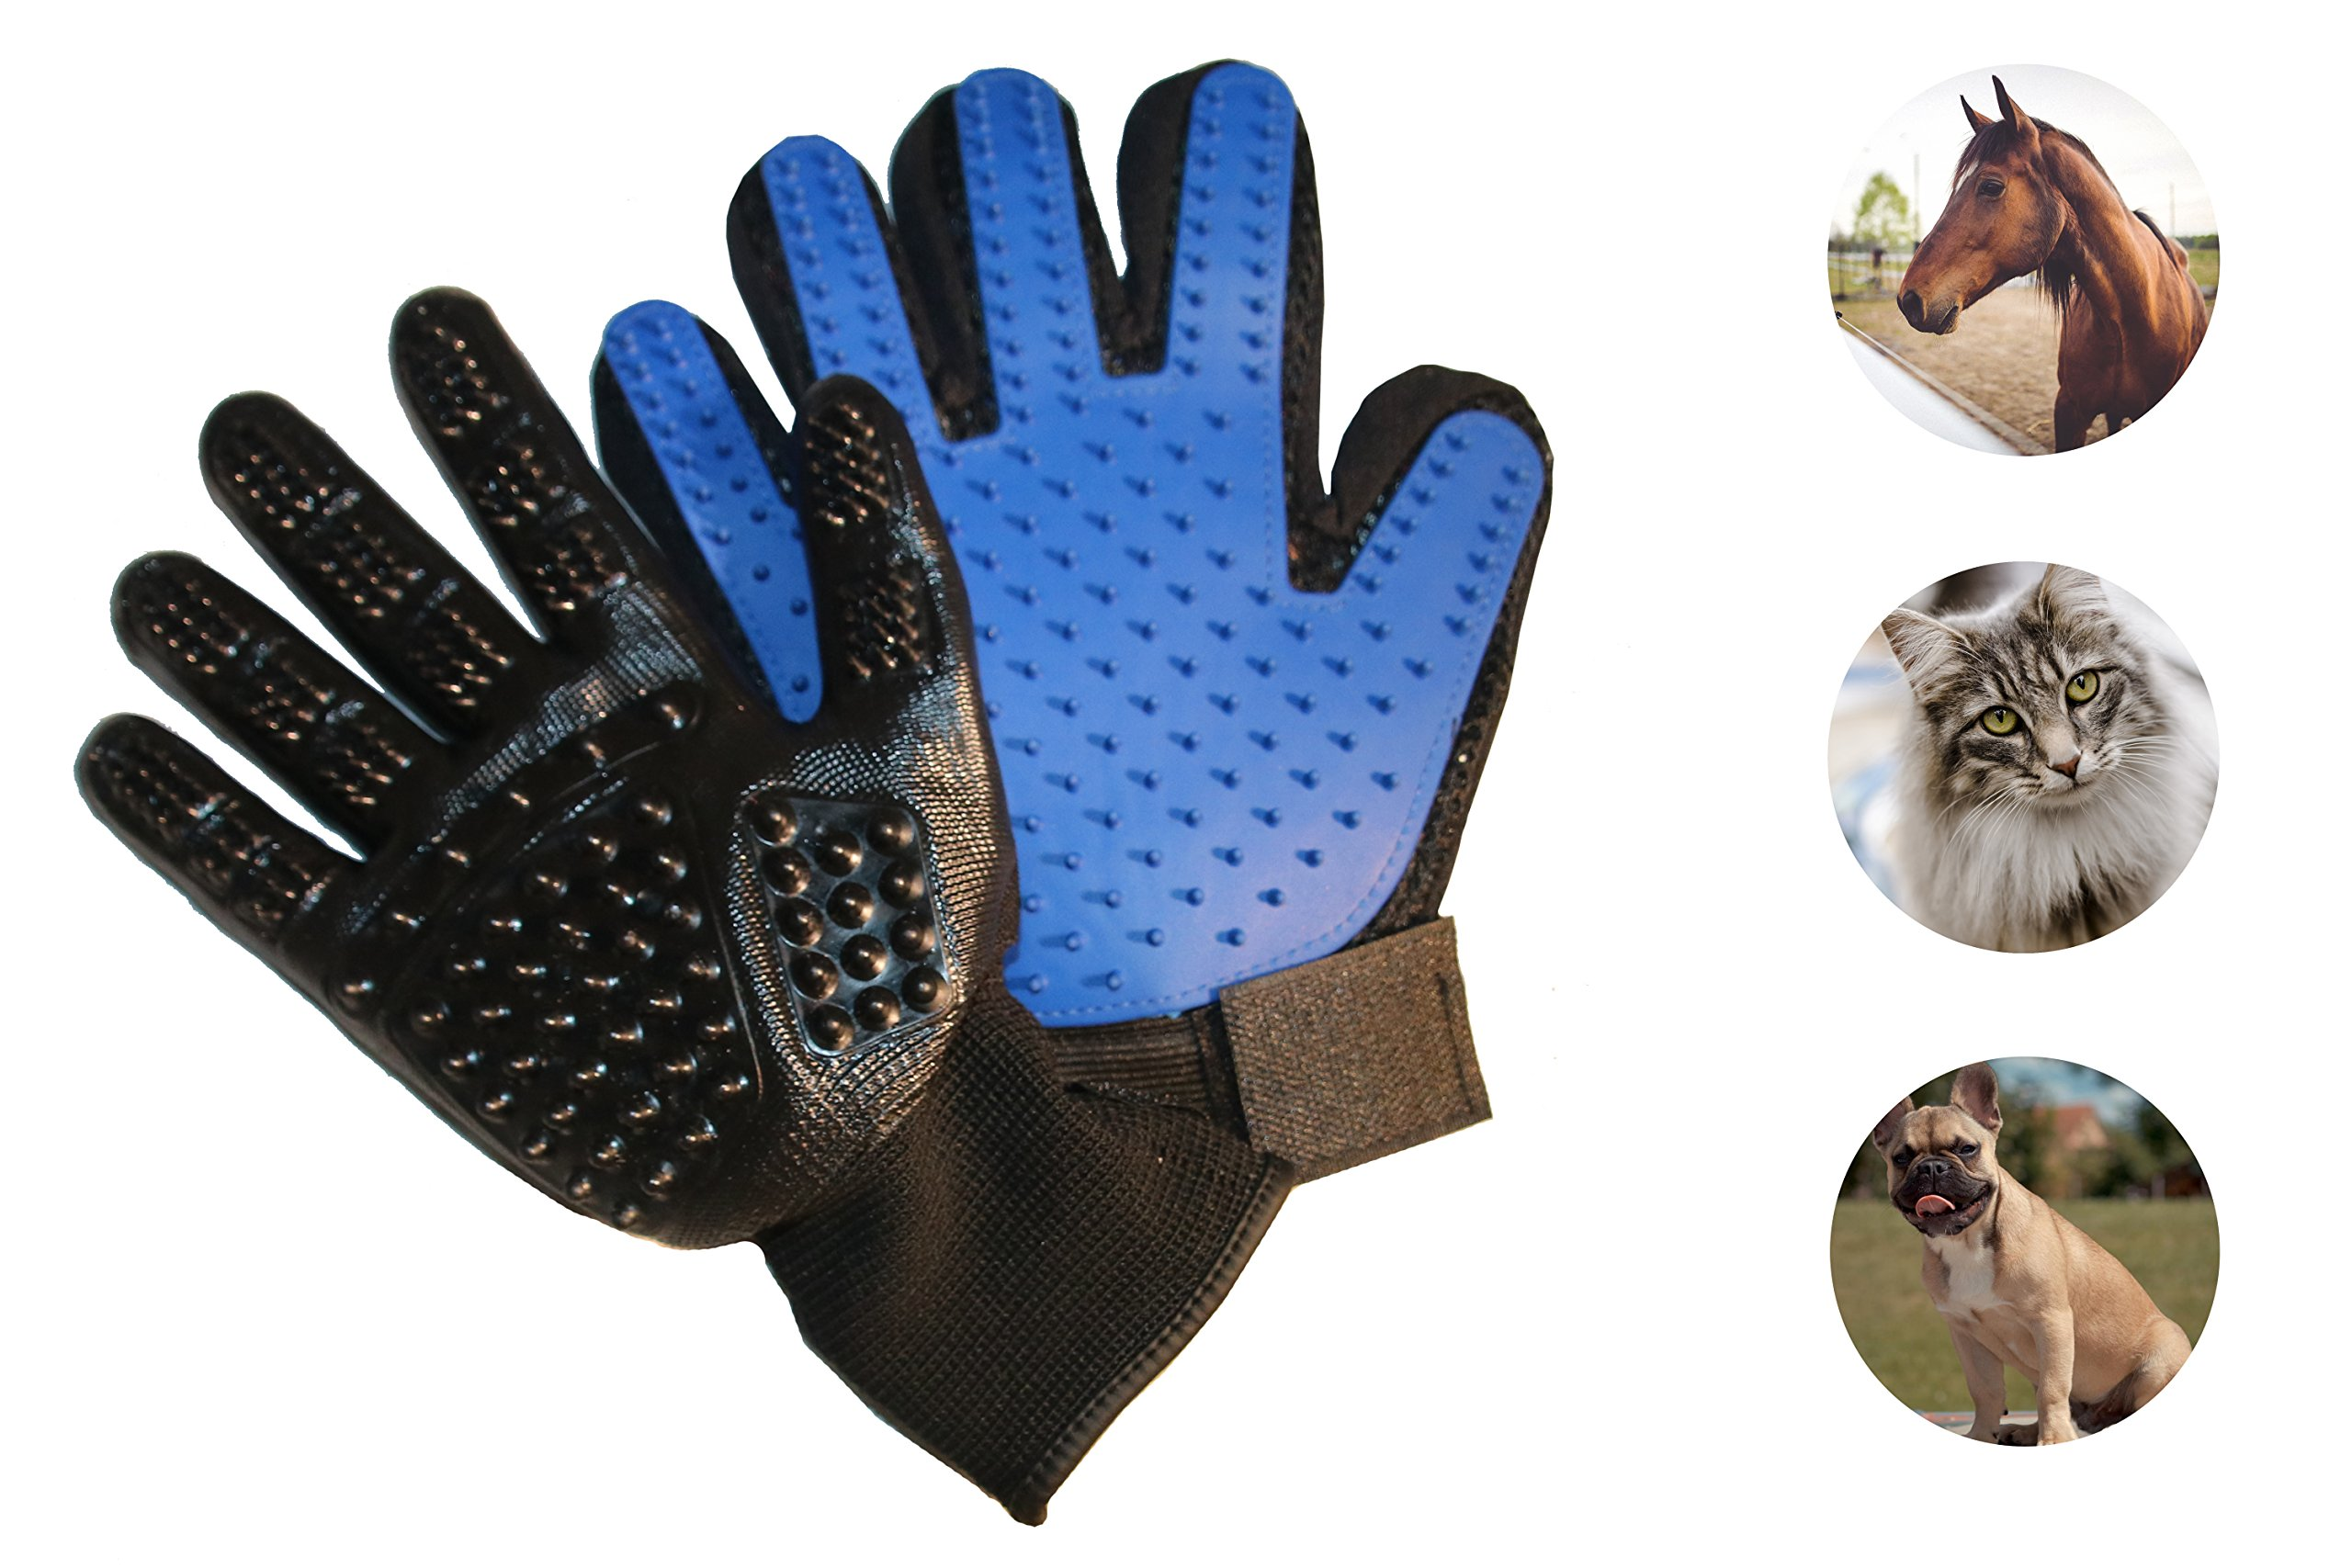 FURRY PAL Grooming & Bath Gloves Kit for Dogs Cats Horses Pets - 1 Right Hand Grooming Glove for Shedding Long and Short Fur - 1 Right Hand Bathing Mitt for Gentle Massage and Bathing